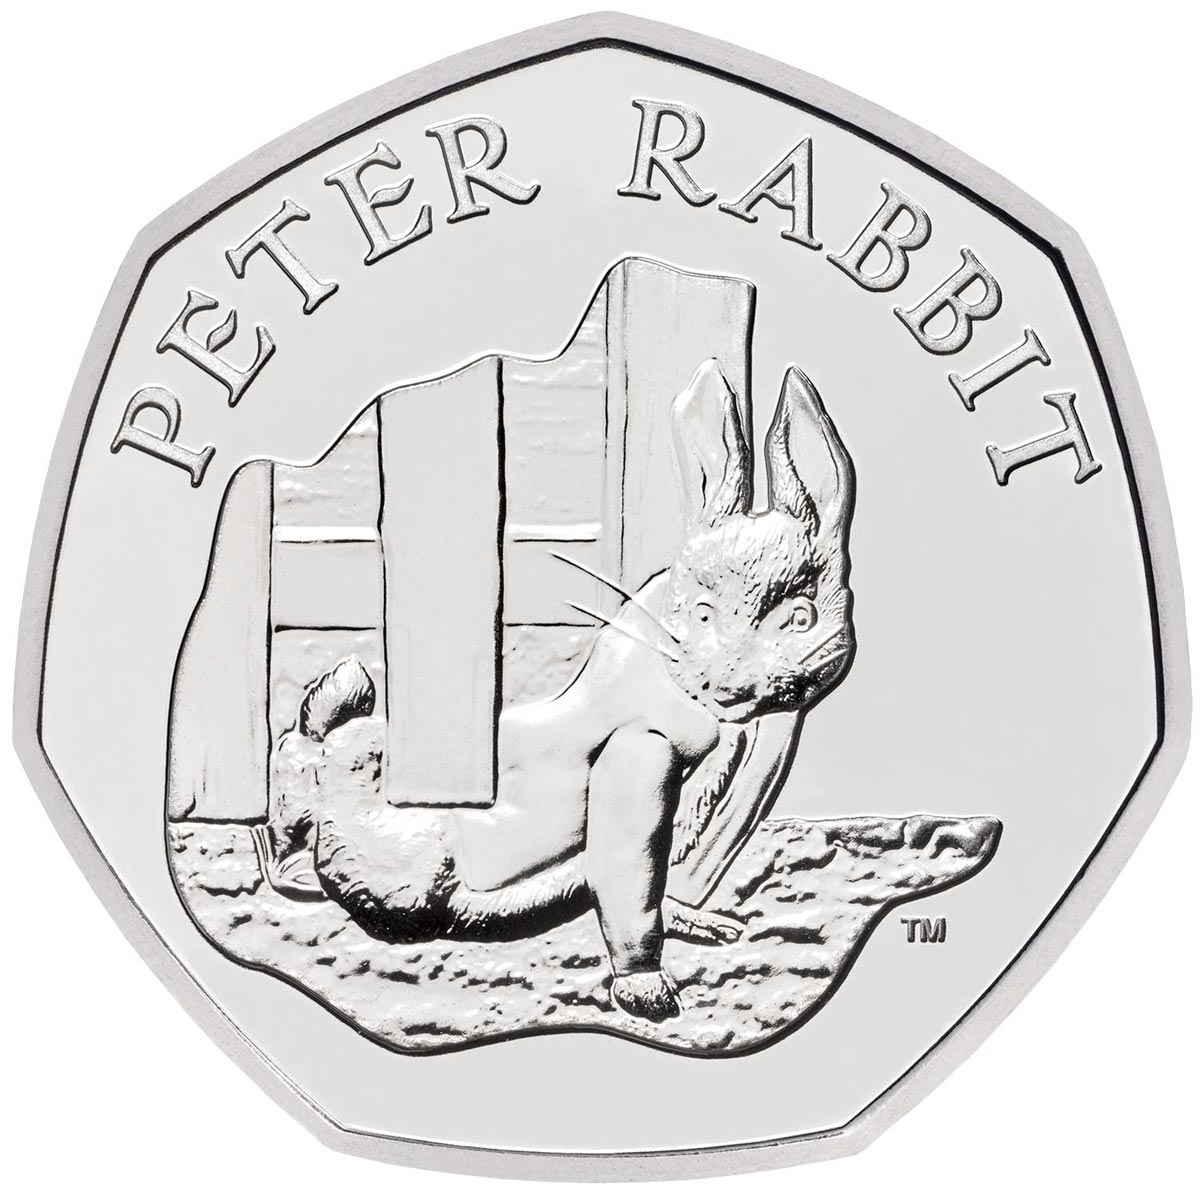 Image of 50 pence coin - Peter Rabbit | United Kingdom 2020